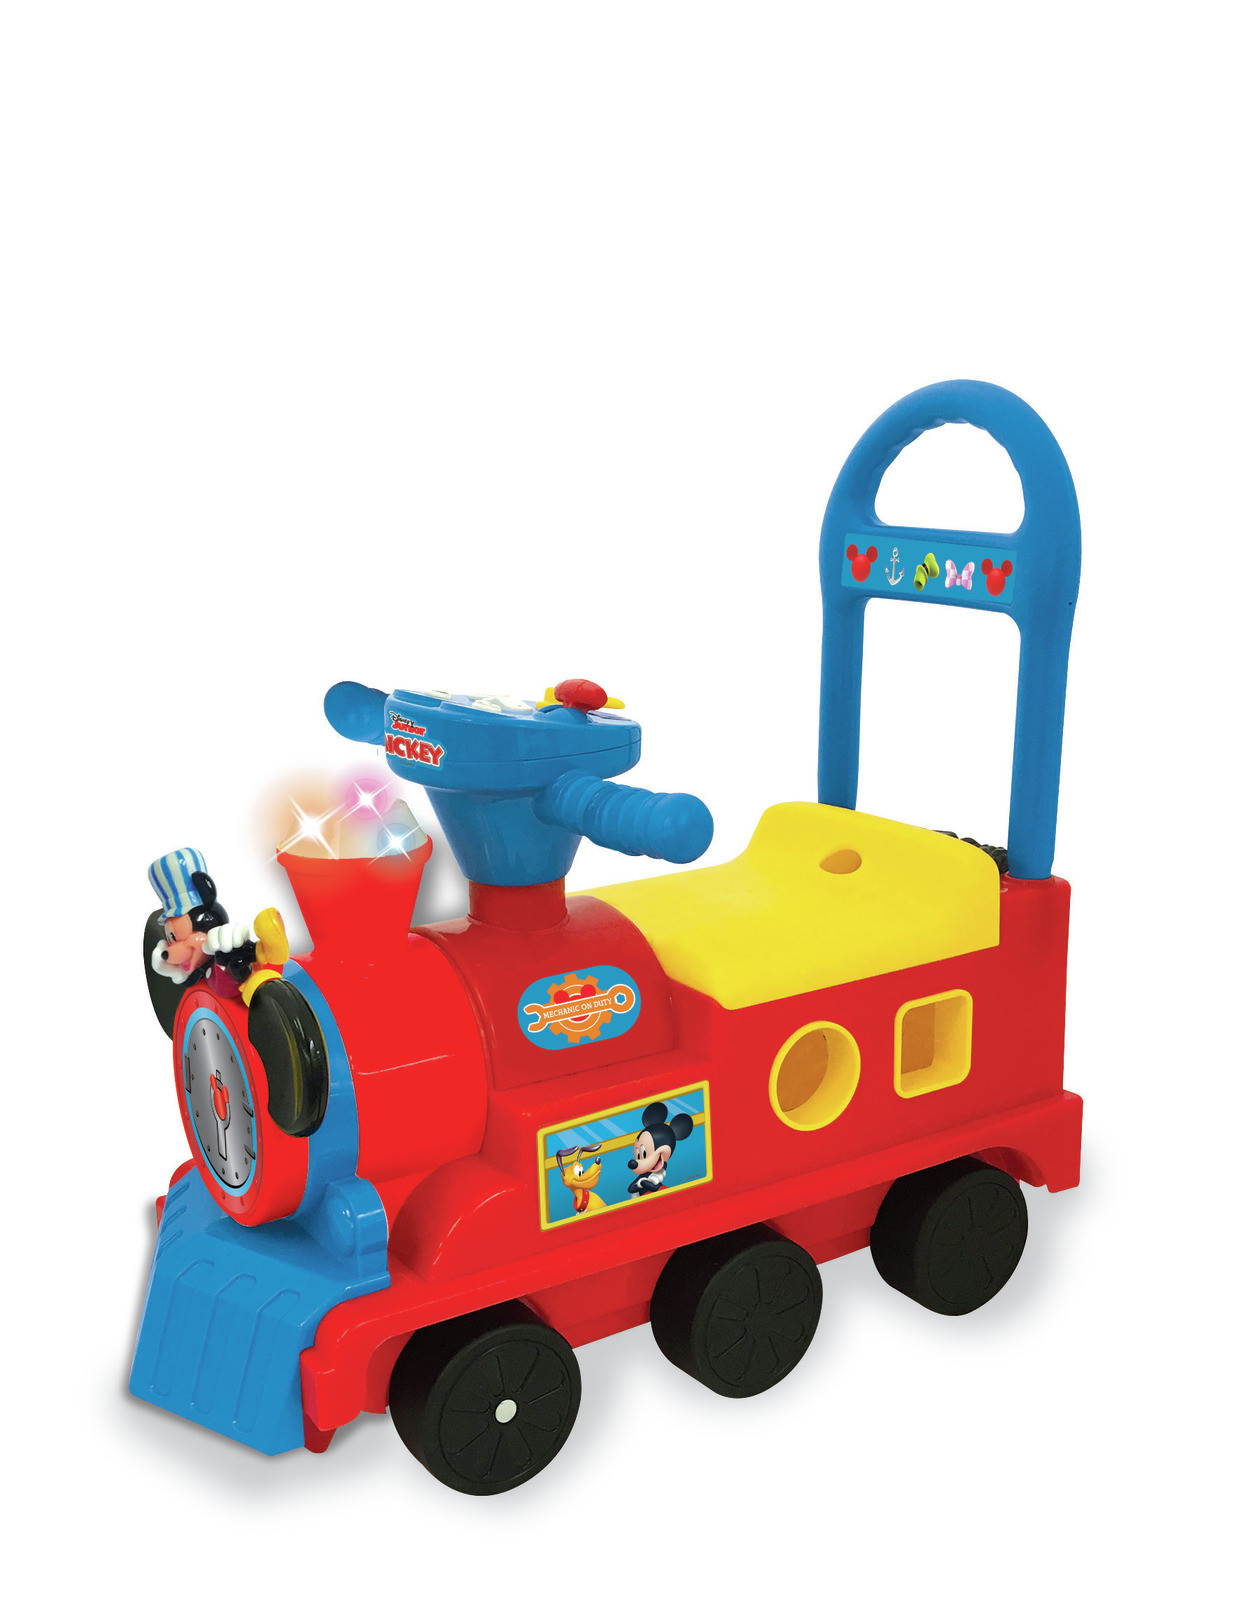 Kiddieland: Play & Sort Train Activity Ride-On - Mickey Mouse image